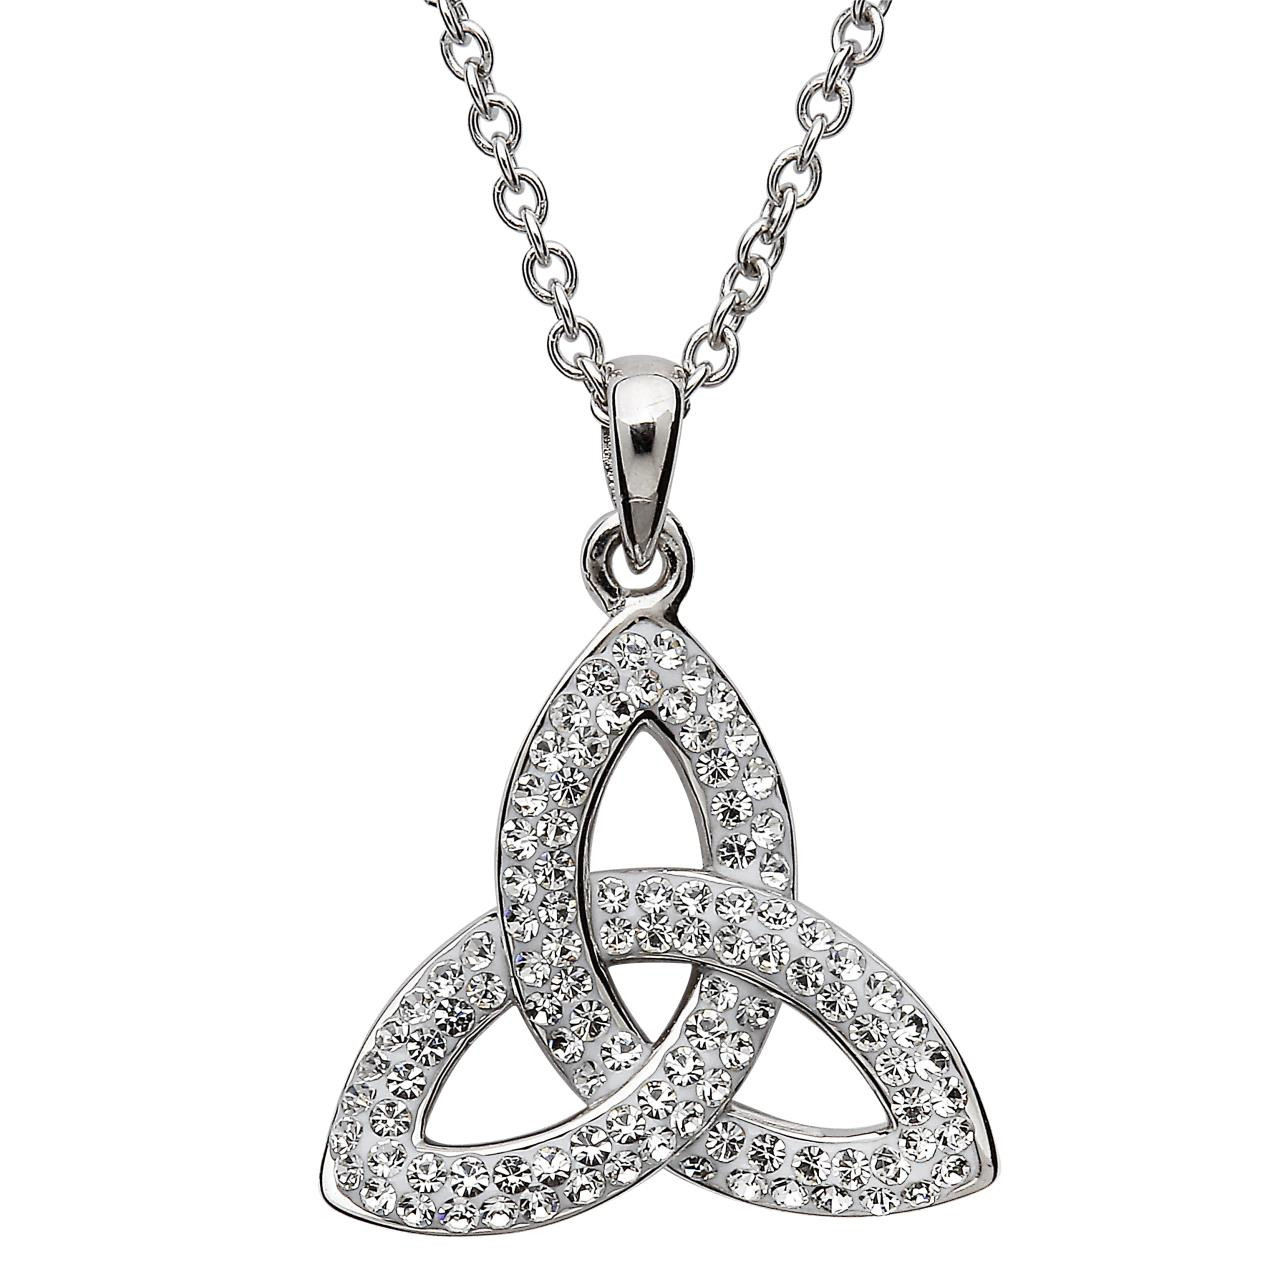 15feacd6620bc Trinity Knot Necklace Embellished with Swarovski Crystals